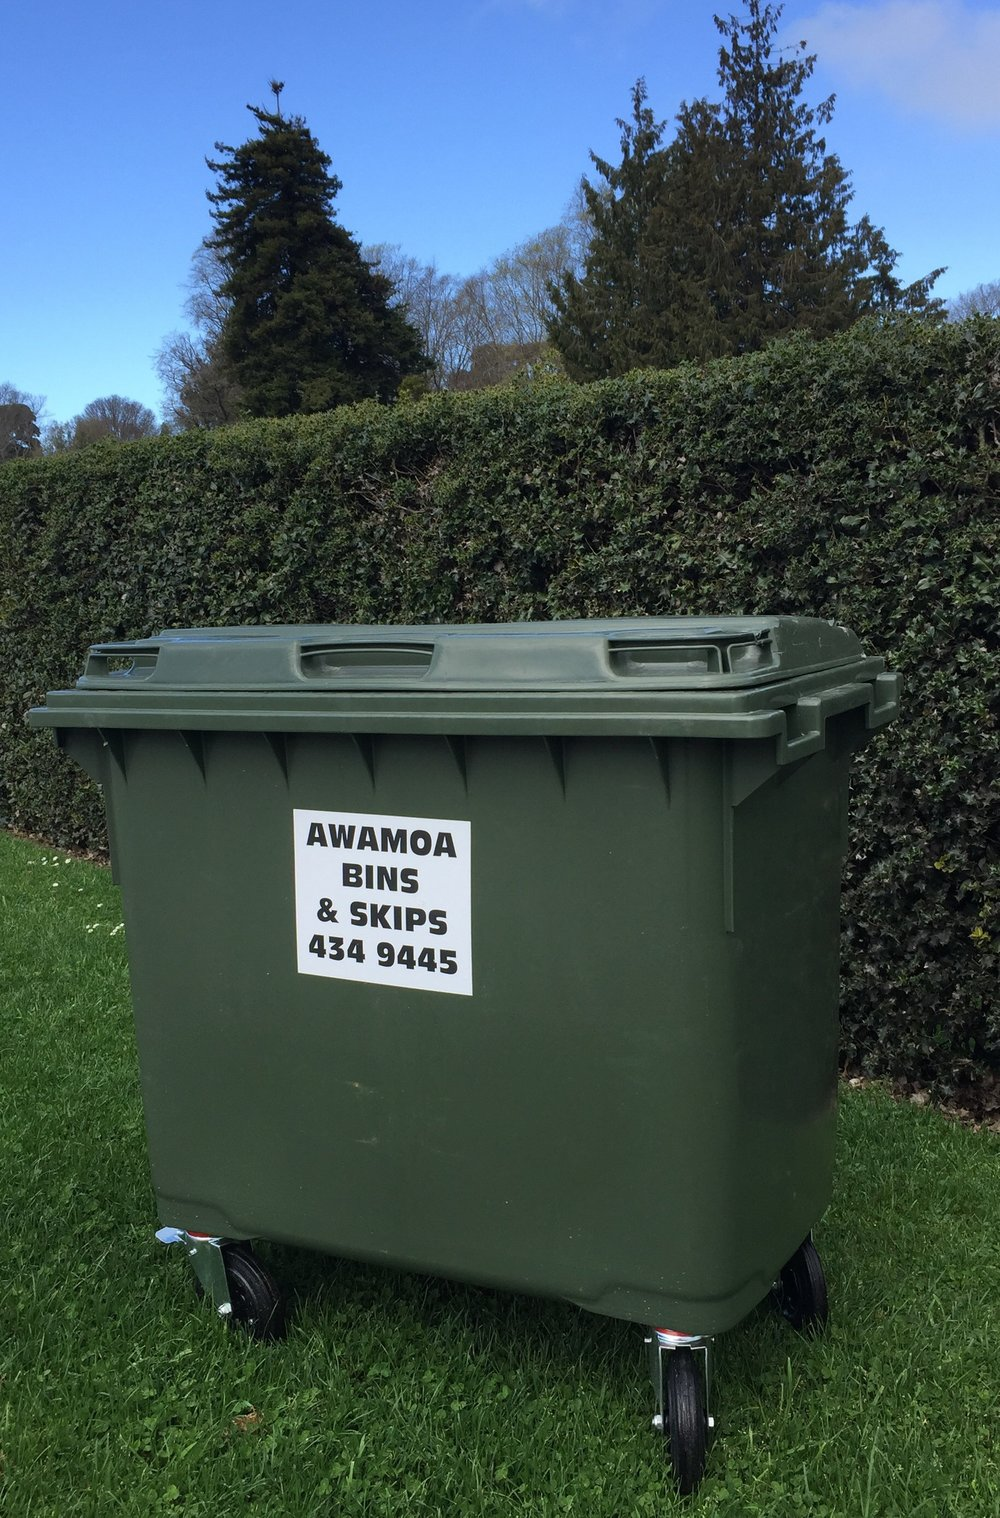 COMMERCIAL WASTE - For our business customers we offer larger bins for general waste, 1100 Litre and 660 Litre.We also offer a range of bin sizes and collection options for GLASS, PLASTIC, CARDBOARD and PAPER.Lids can be locked if required.Contact us for more information.